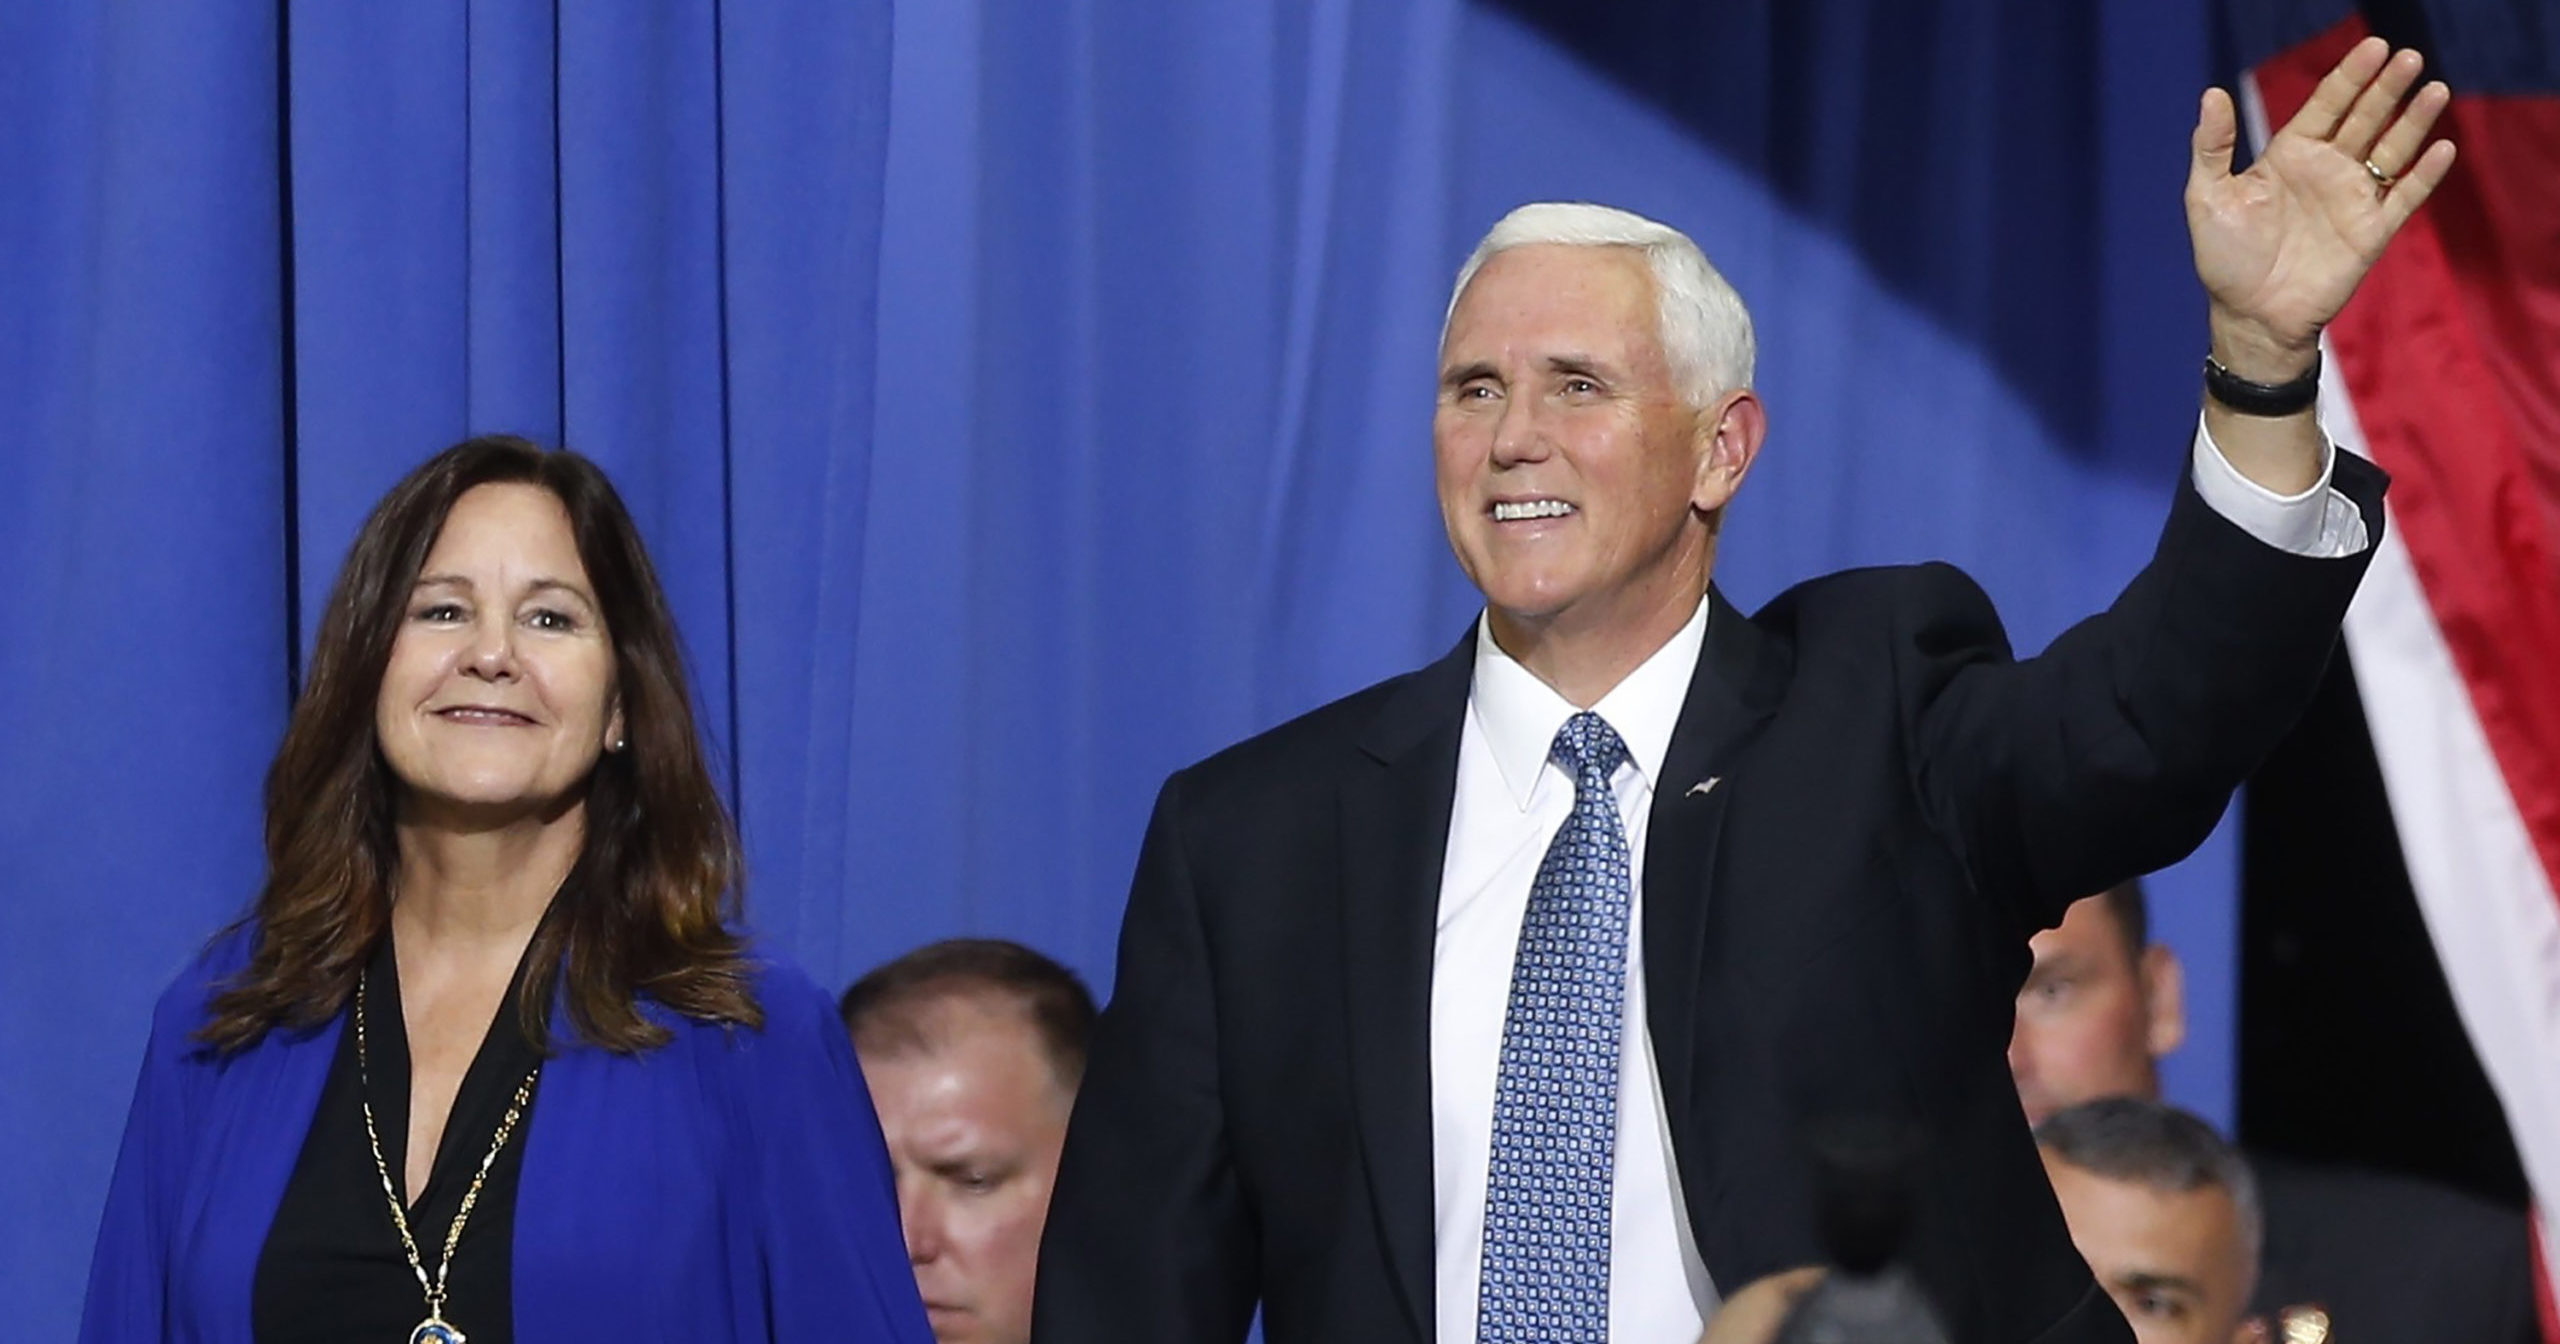 Vice President Mike Pence and Ivanka Trump are bringing President Donald Trump's law and order campaign message to Minneapolis on Sept. 24, 2020, showing support for law enforcement in the city where George Floyd's death sparked violent protests across the country.